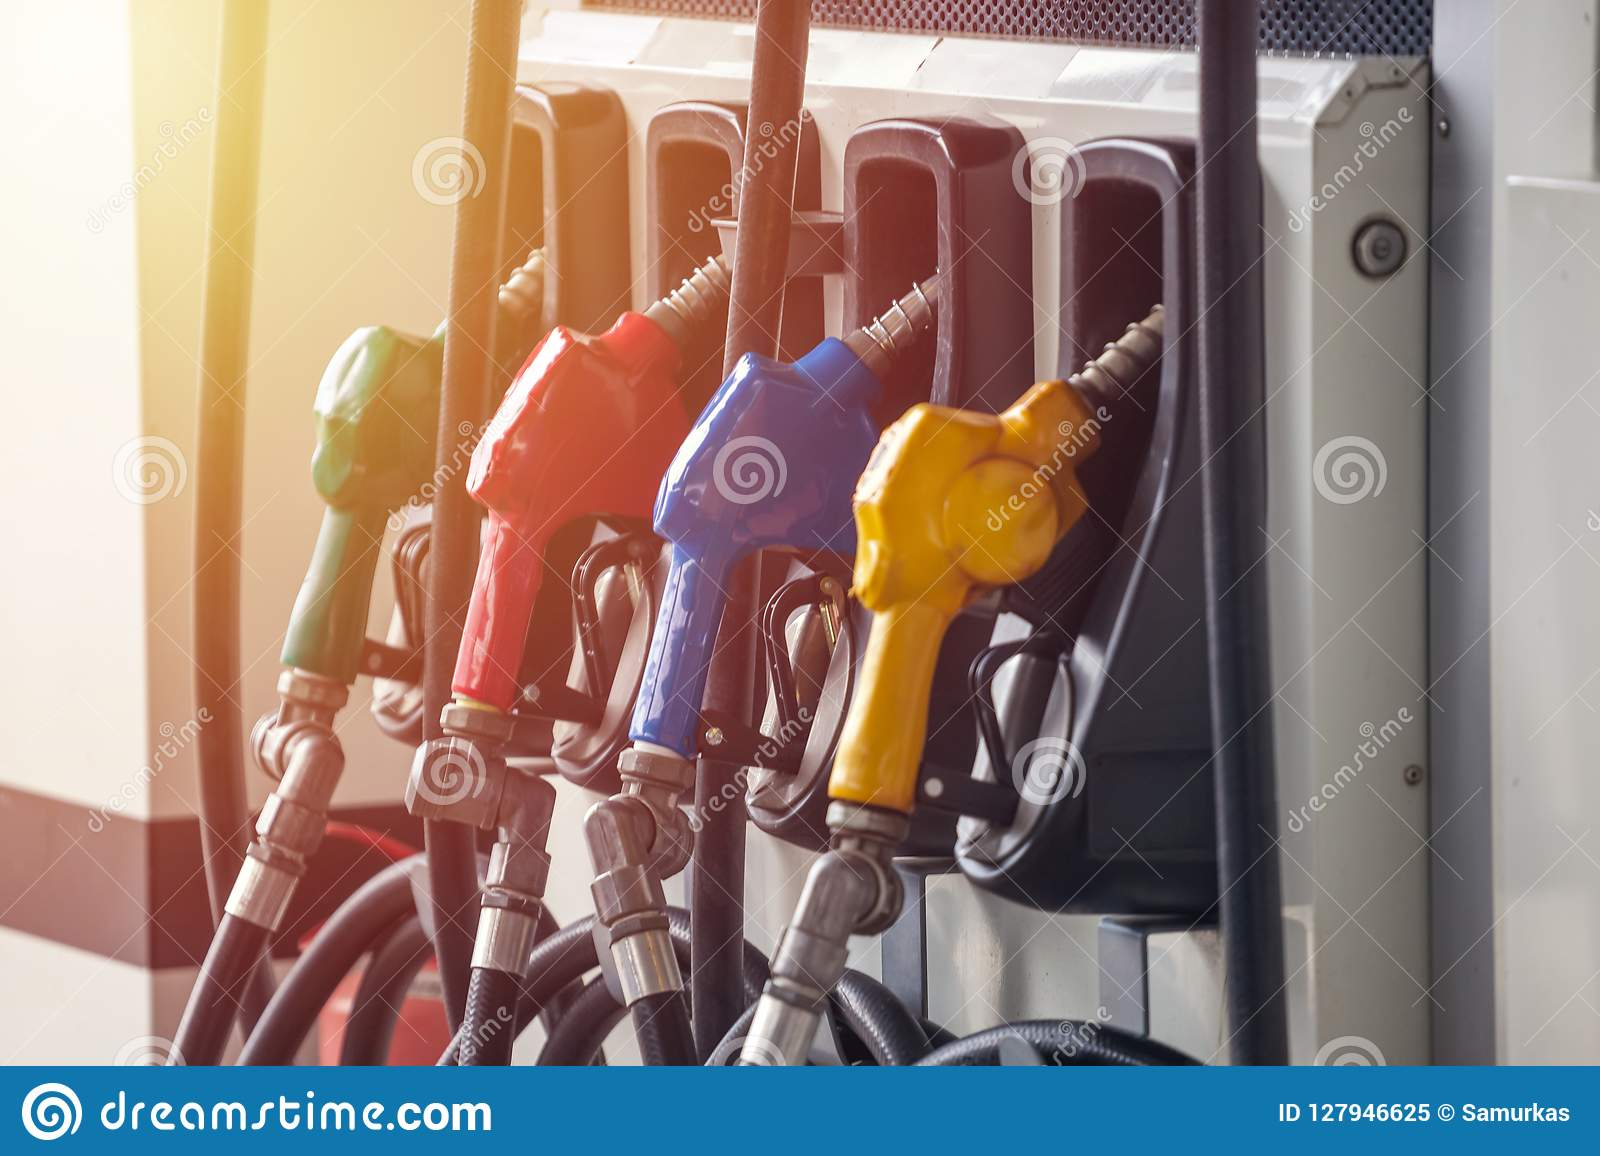 Colorful Petrol pump filling nozzles, Gas station in a service